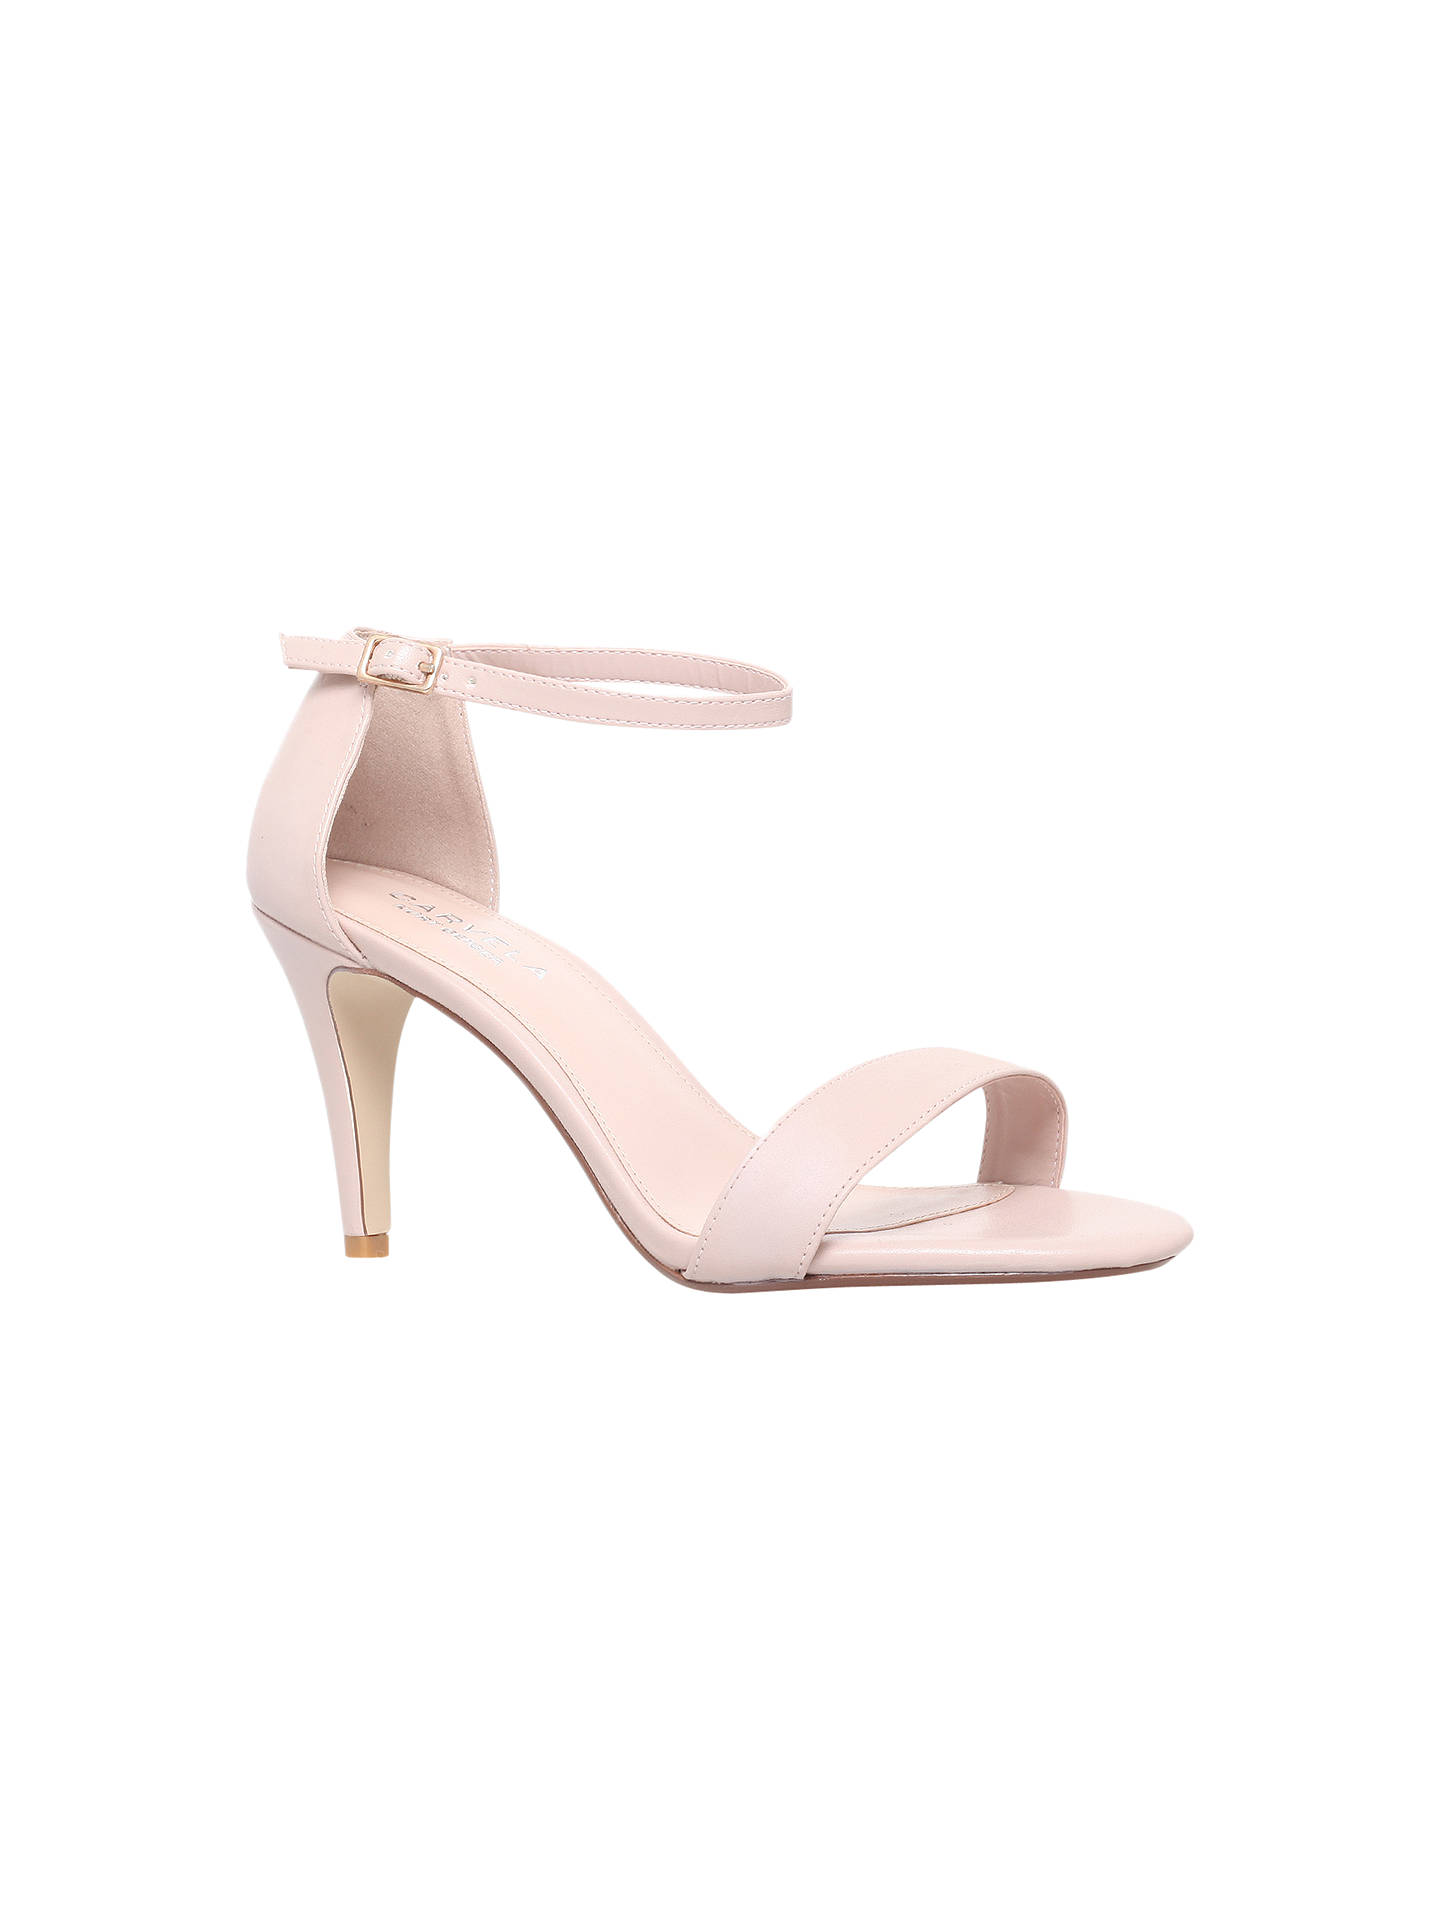 86a86d3e0a Buy Carvela Kiwi Barely There High Heel Sandals, Nude, 3 Online at  johnlewis.